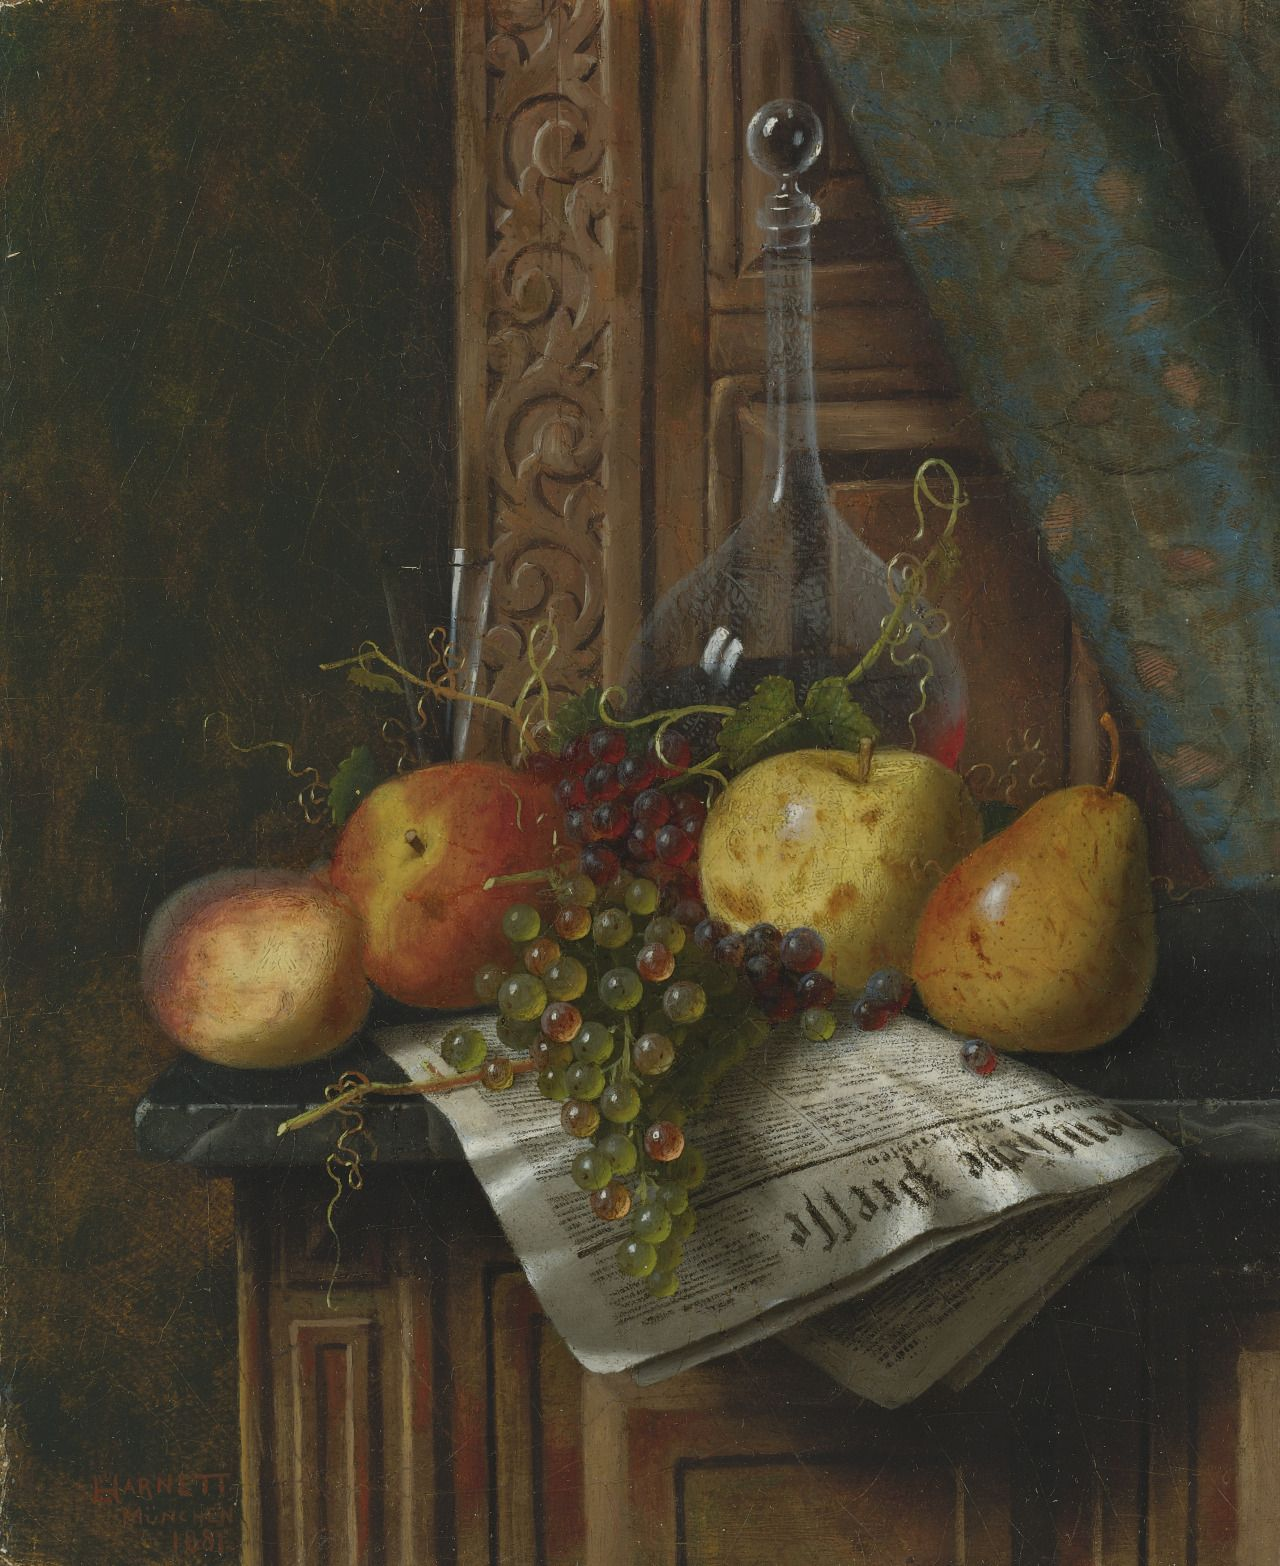 William Michael Harnett (1848-1892) - Still life with fruit and newspaper, oil on canvas, 22.2 x 18.4 cm. 1881.